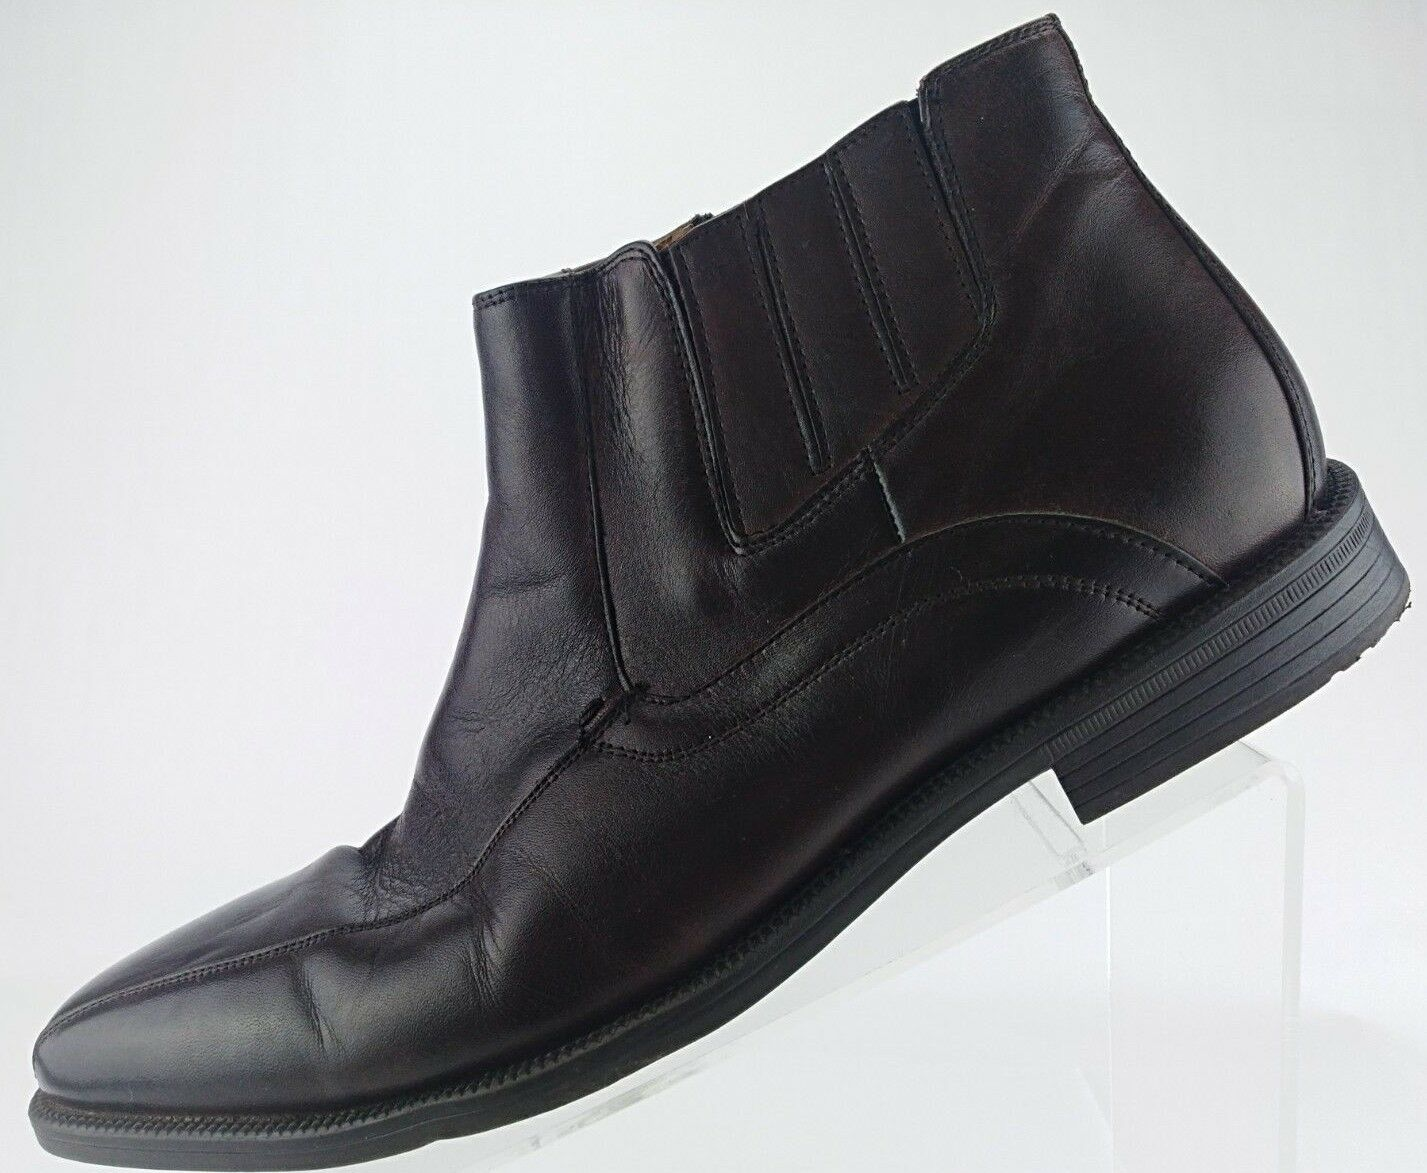 Florsheim Forum Bike Toe Zipper Ankle Boots- Dress Leather shoes Mens 10.5D Brown